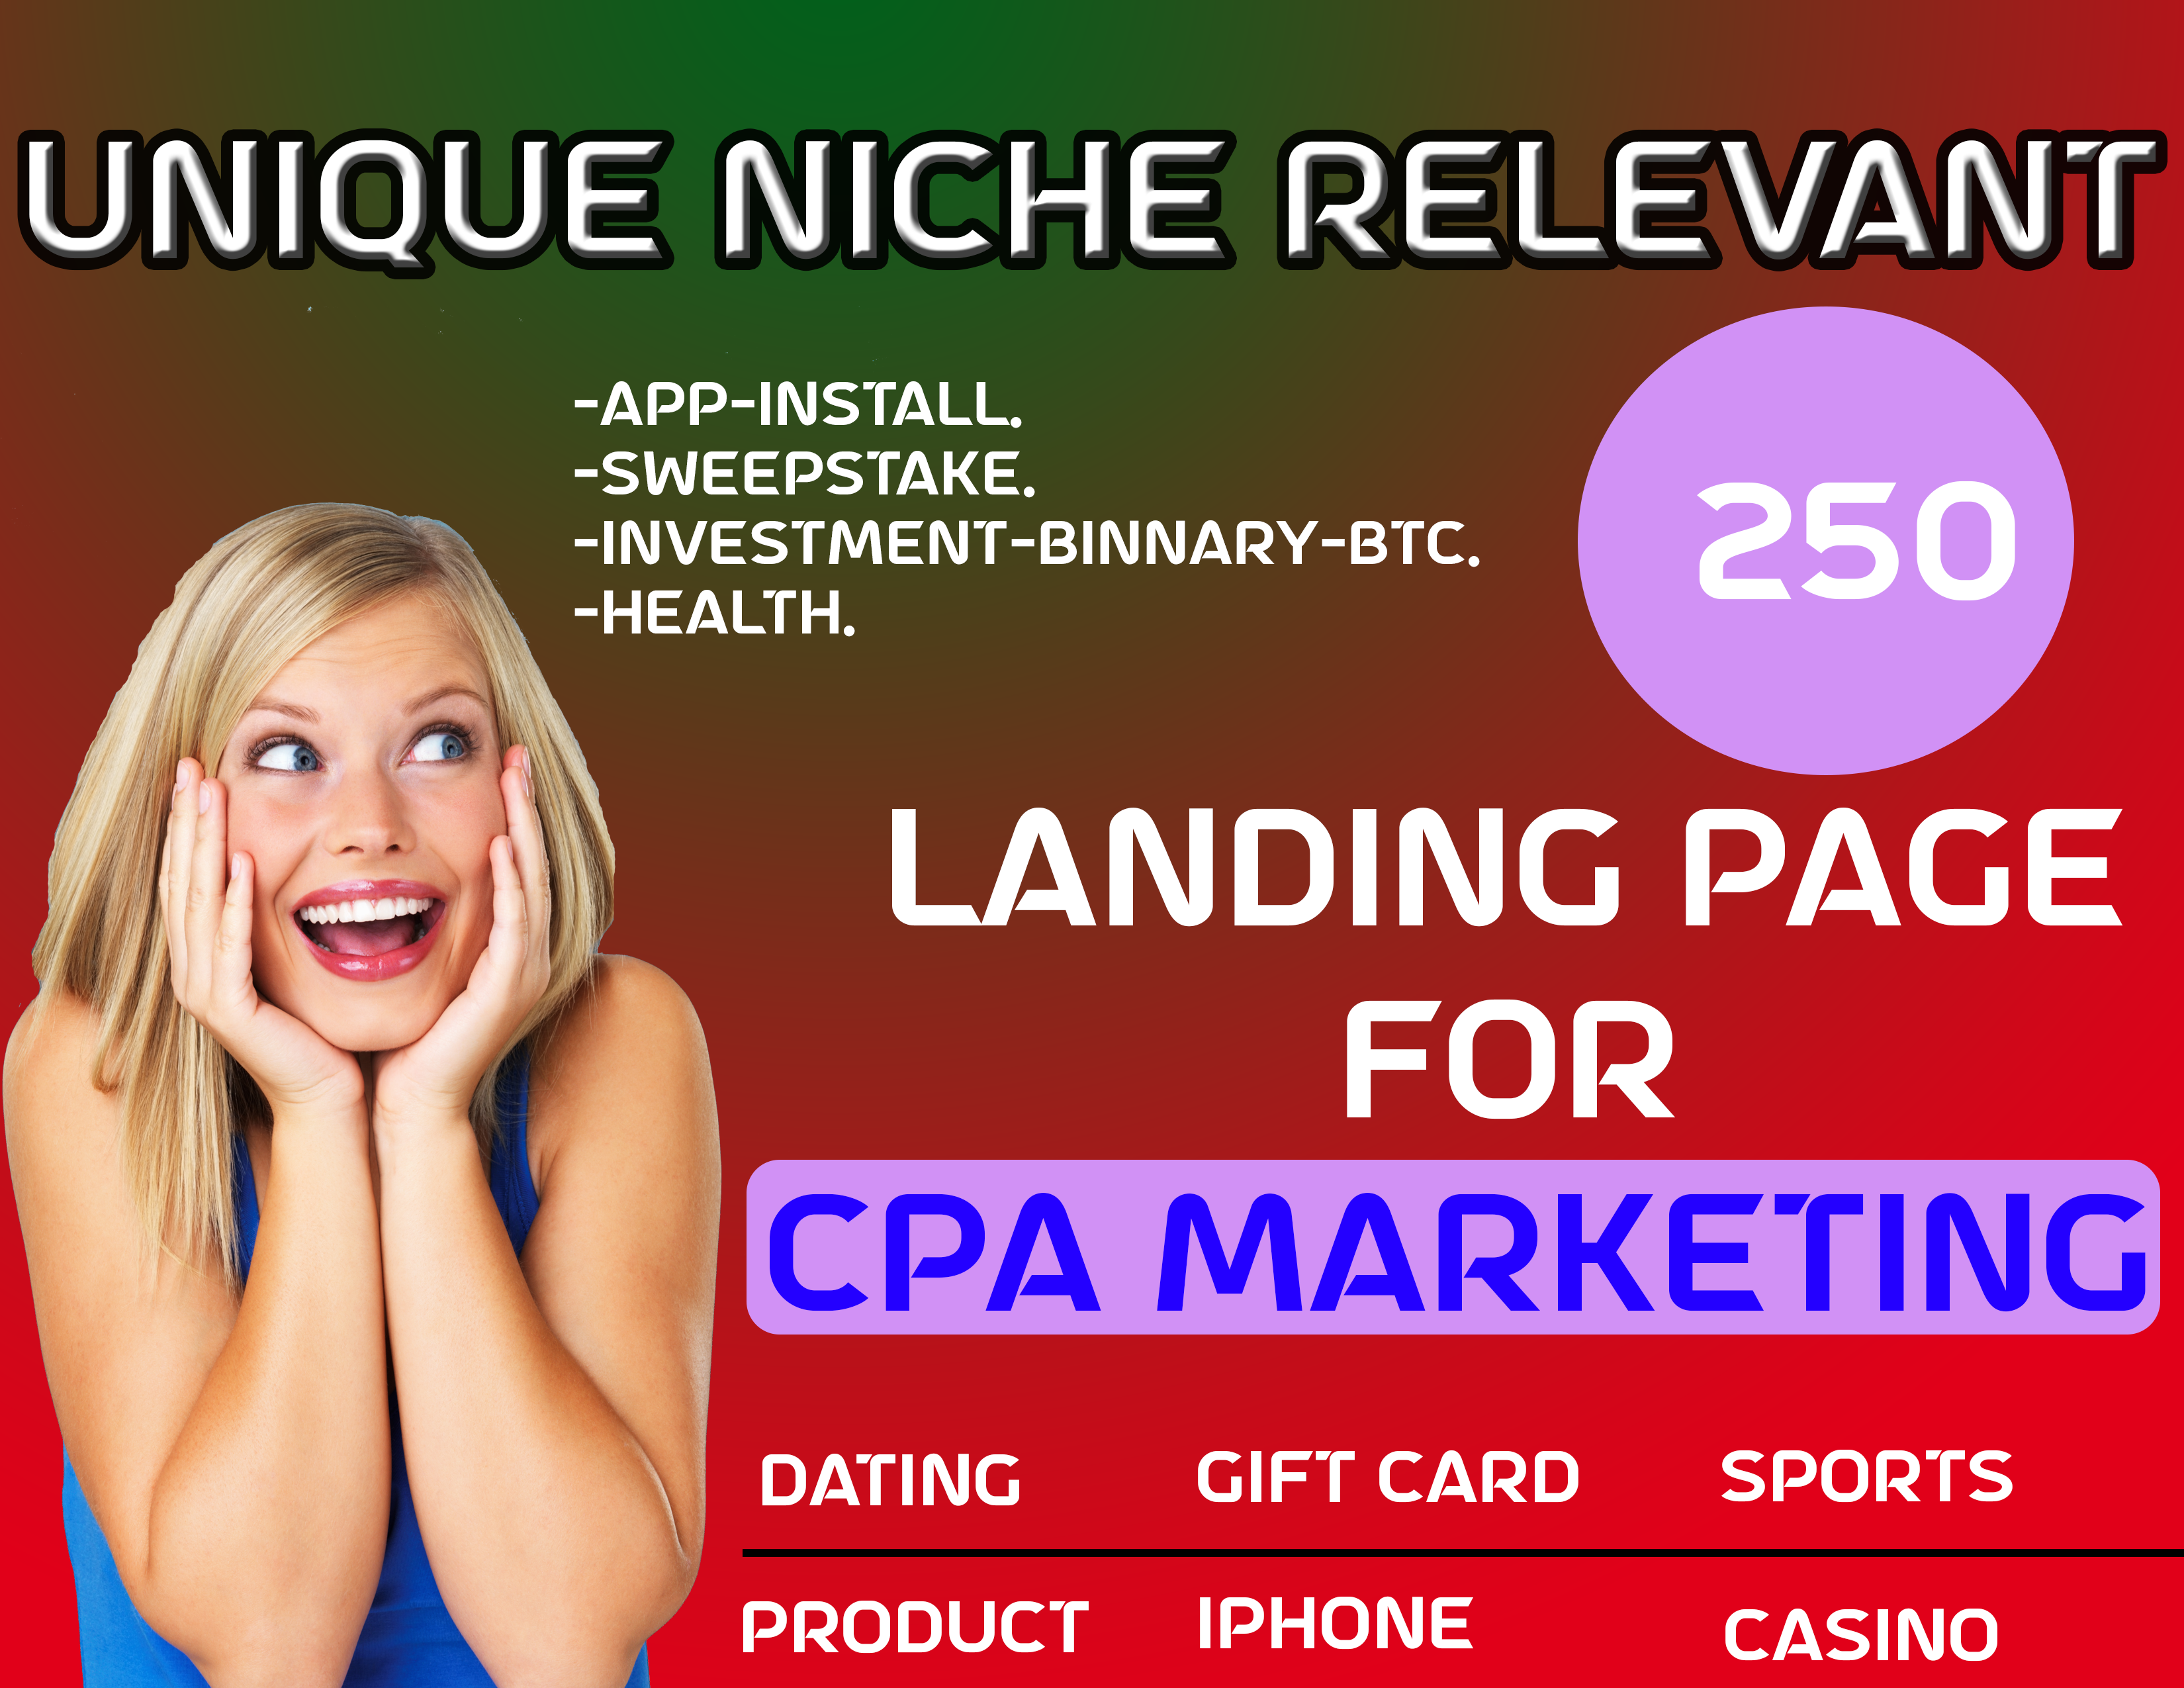 provide Unique Niches Relevant 250 Landing Page For Cpa Offers